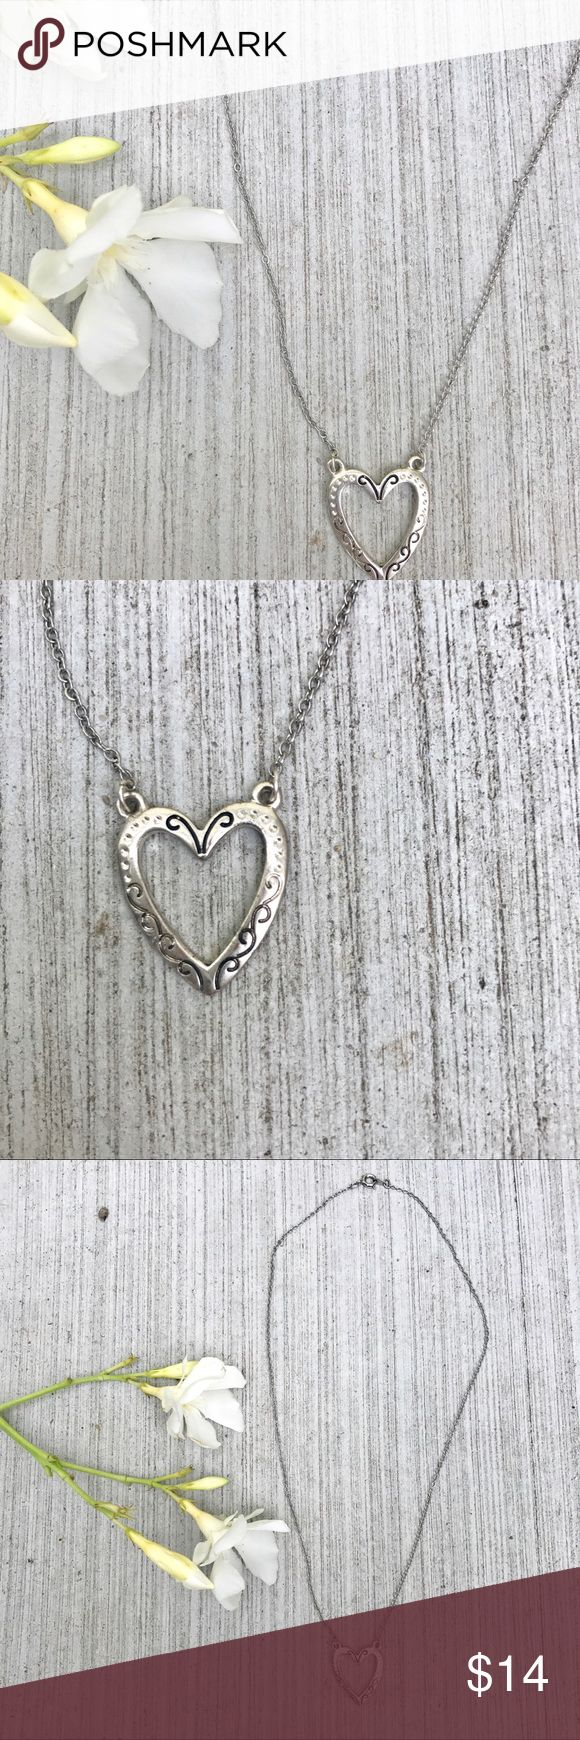 """🎈4/$25 silver HEART NECKLACE charm chain love New! Cute open heart necklace with carved curly cues detail. Silver tone. End to end measures 18"""". Delicate pendant, great for a young loved one at heart. j11 Jewelry Necklaces"""